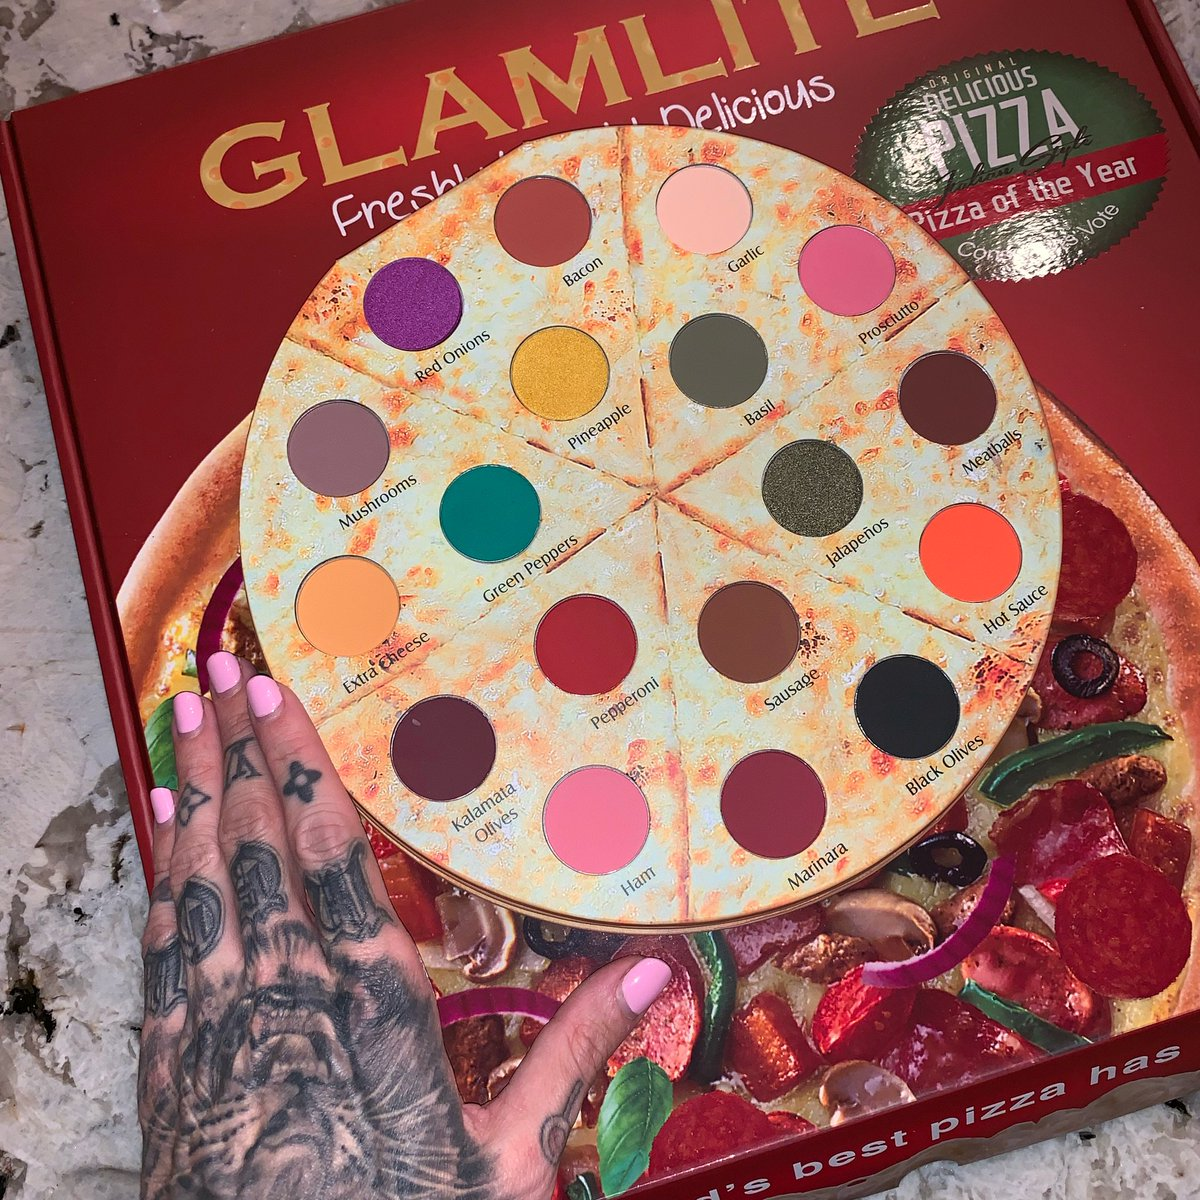 Just got the #Pizza eyeshadow palette in the mail... 😂🍕 Filming a review tomorrow!